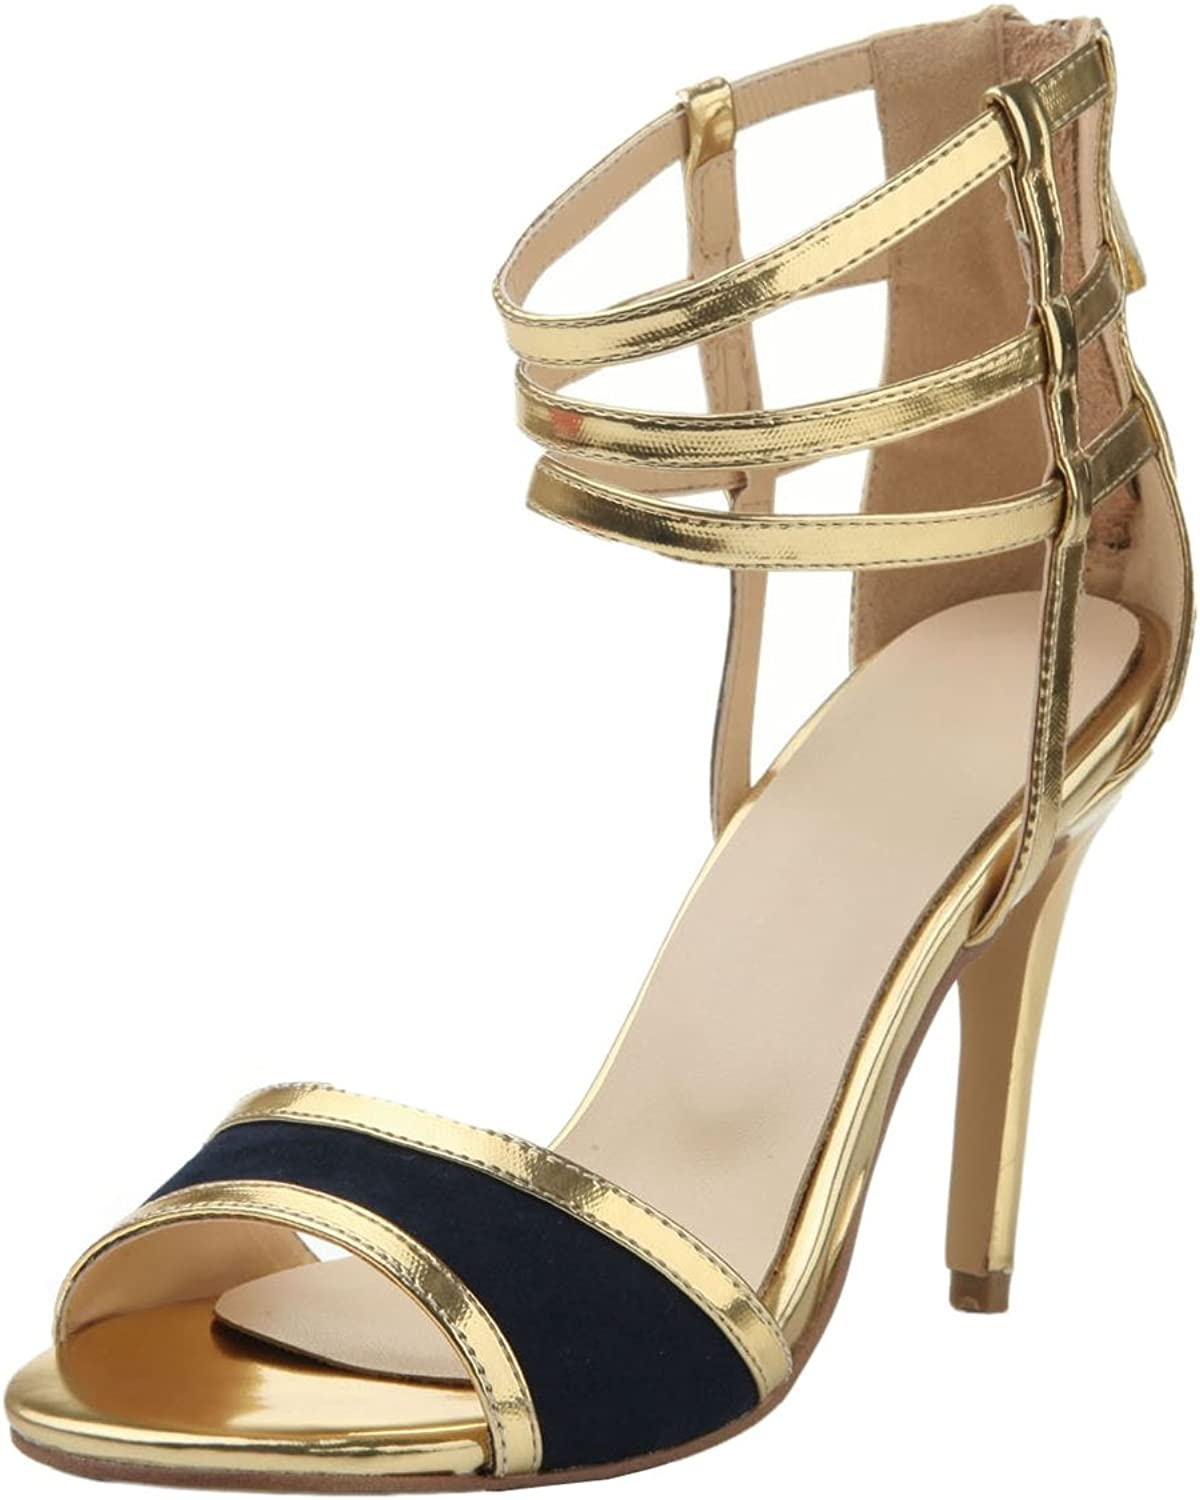 TDA Women's Sexy Bows Peep Toe Synthetic Zipper Evening Party Dress Stiletto shoes